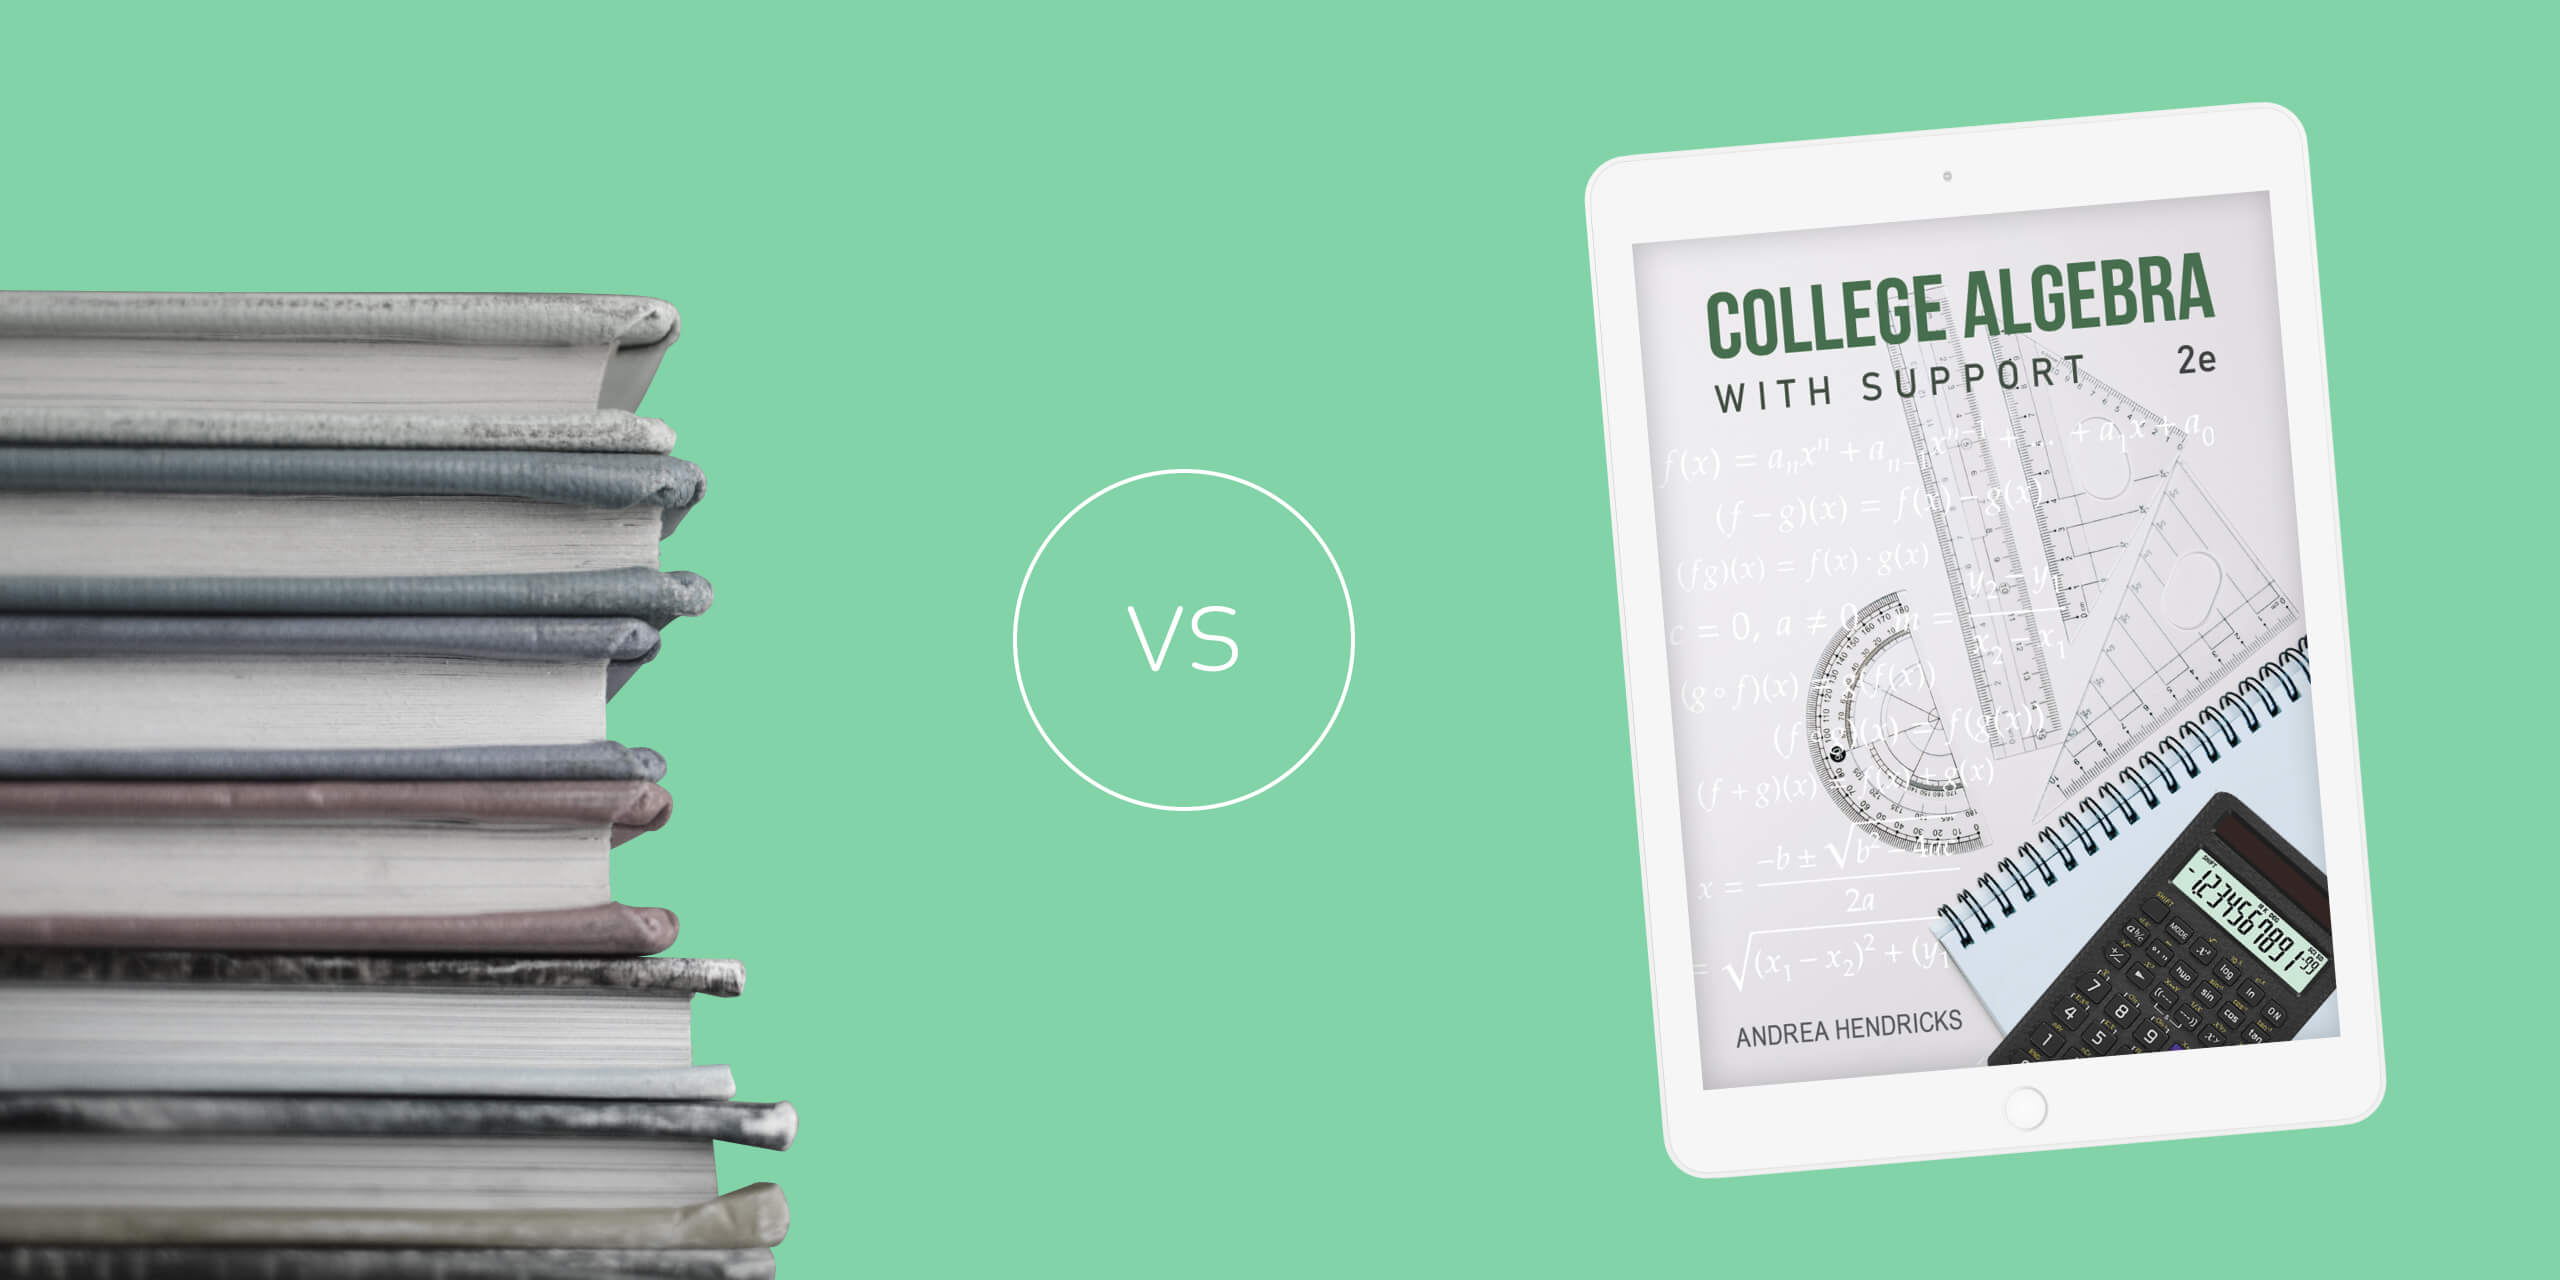 College Algebra with Support Textbooks: Which Is The Best?